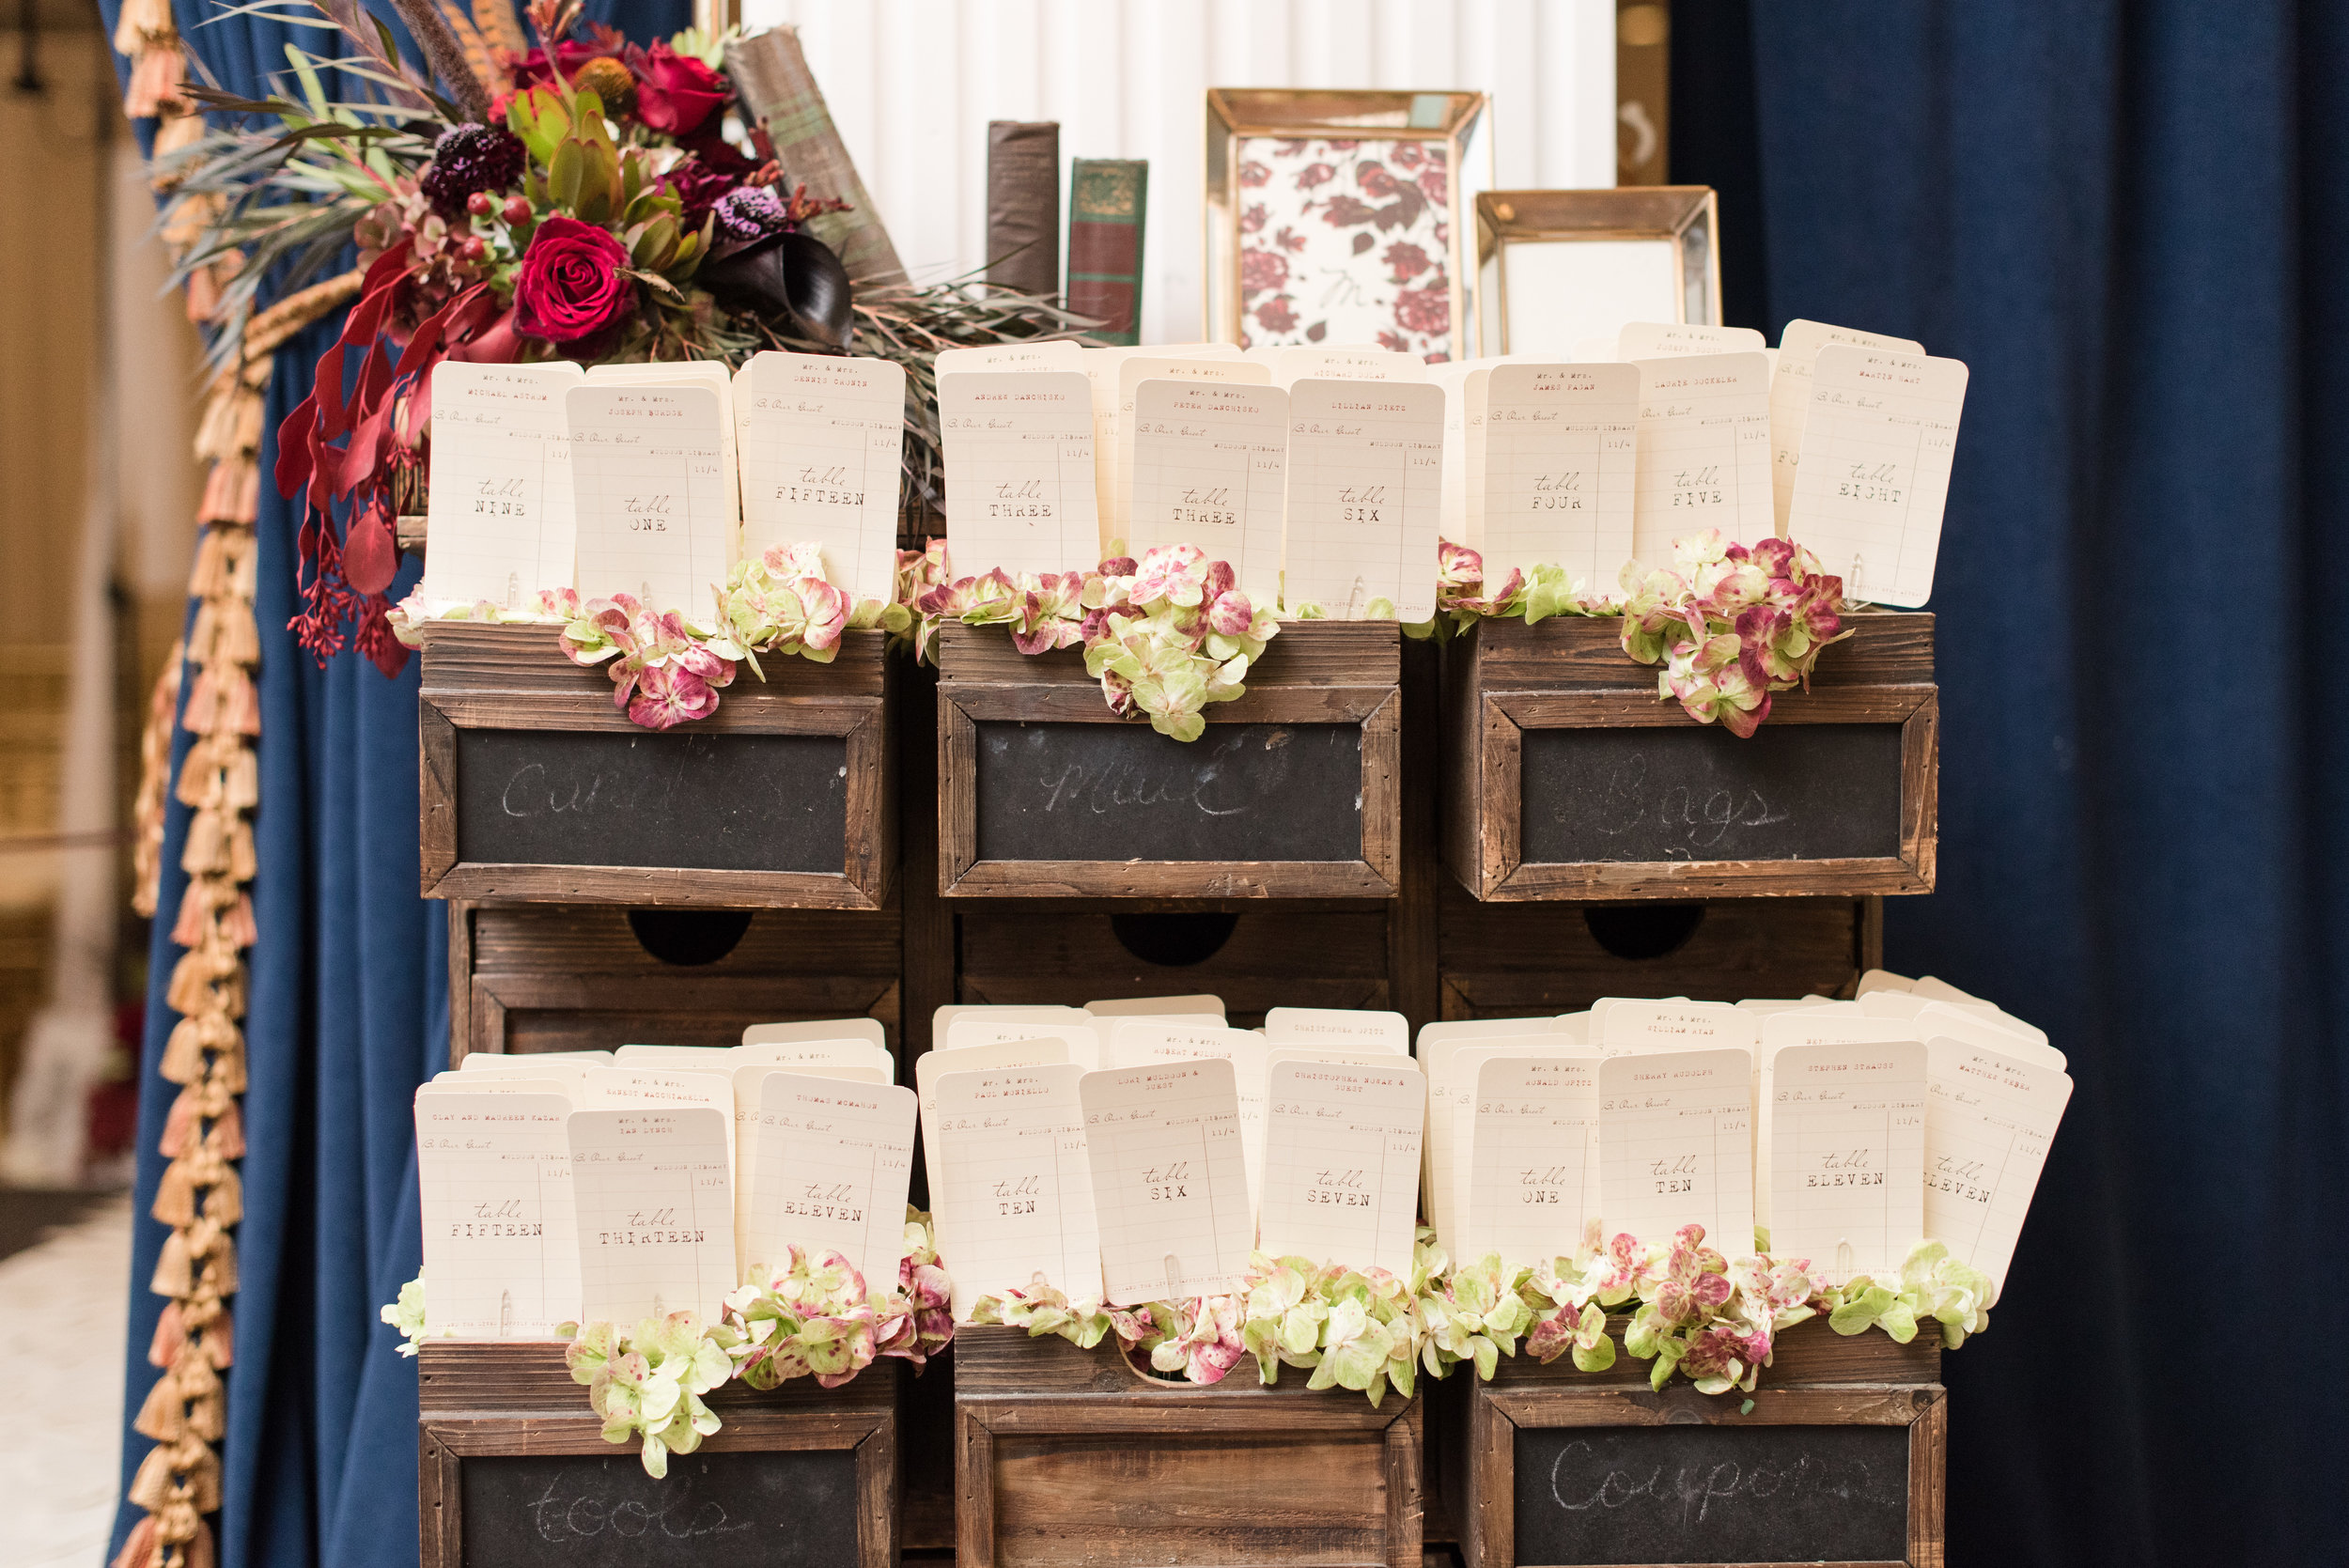 Library card placecards for fall library inspired wedding at Buona Sera Palazzo